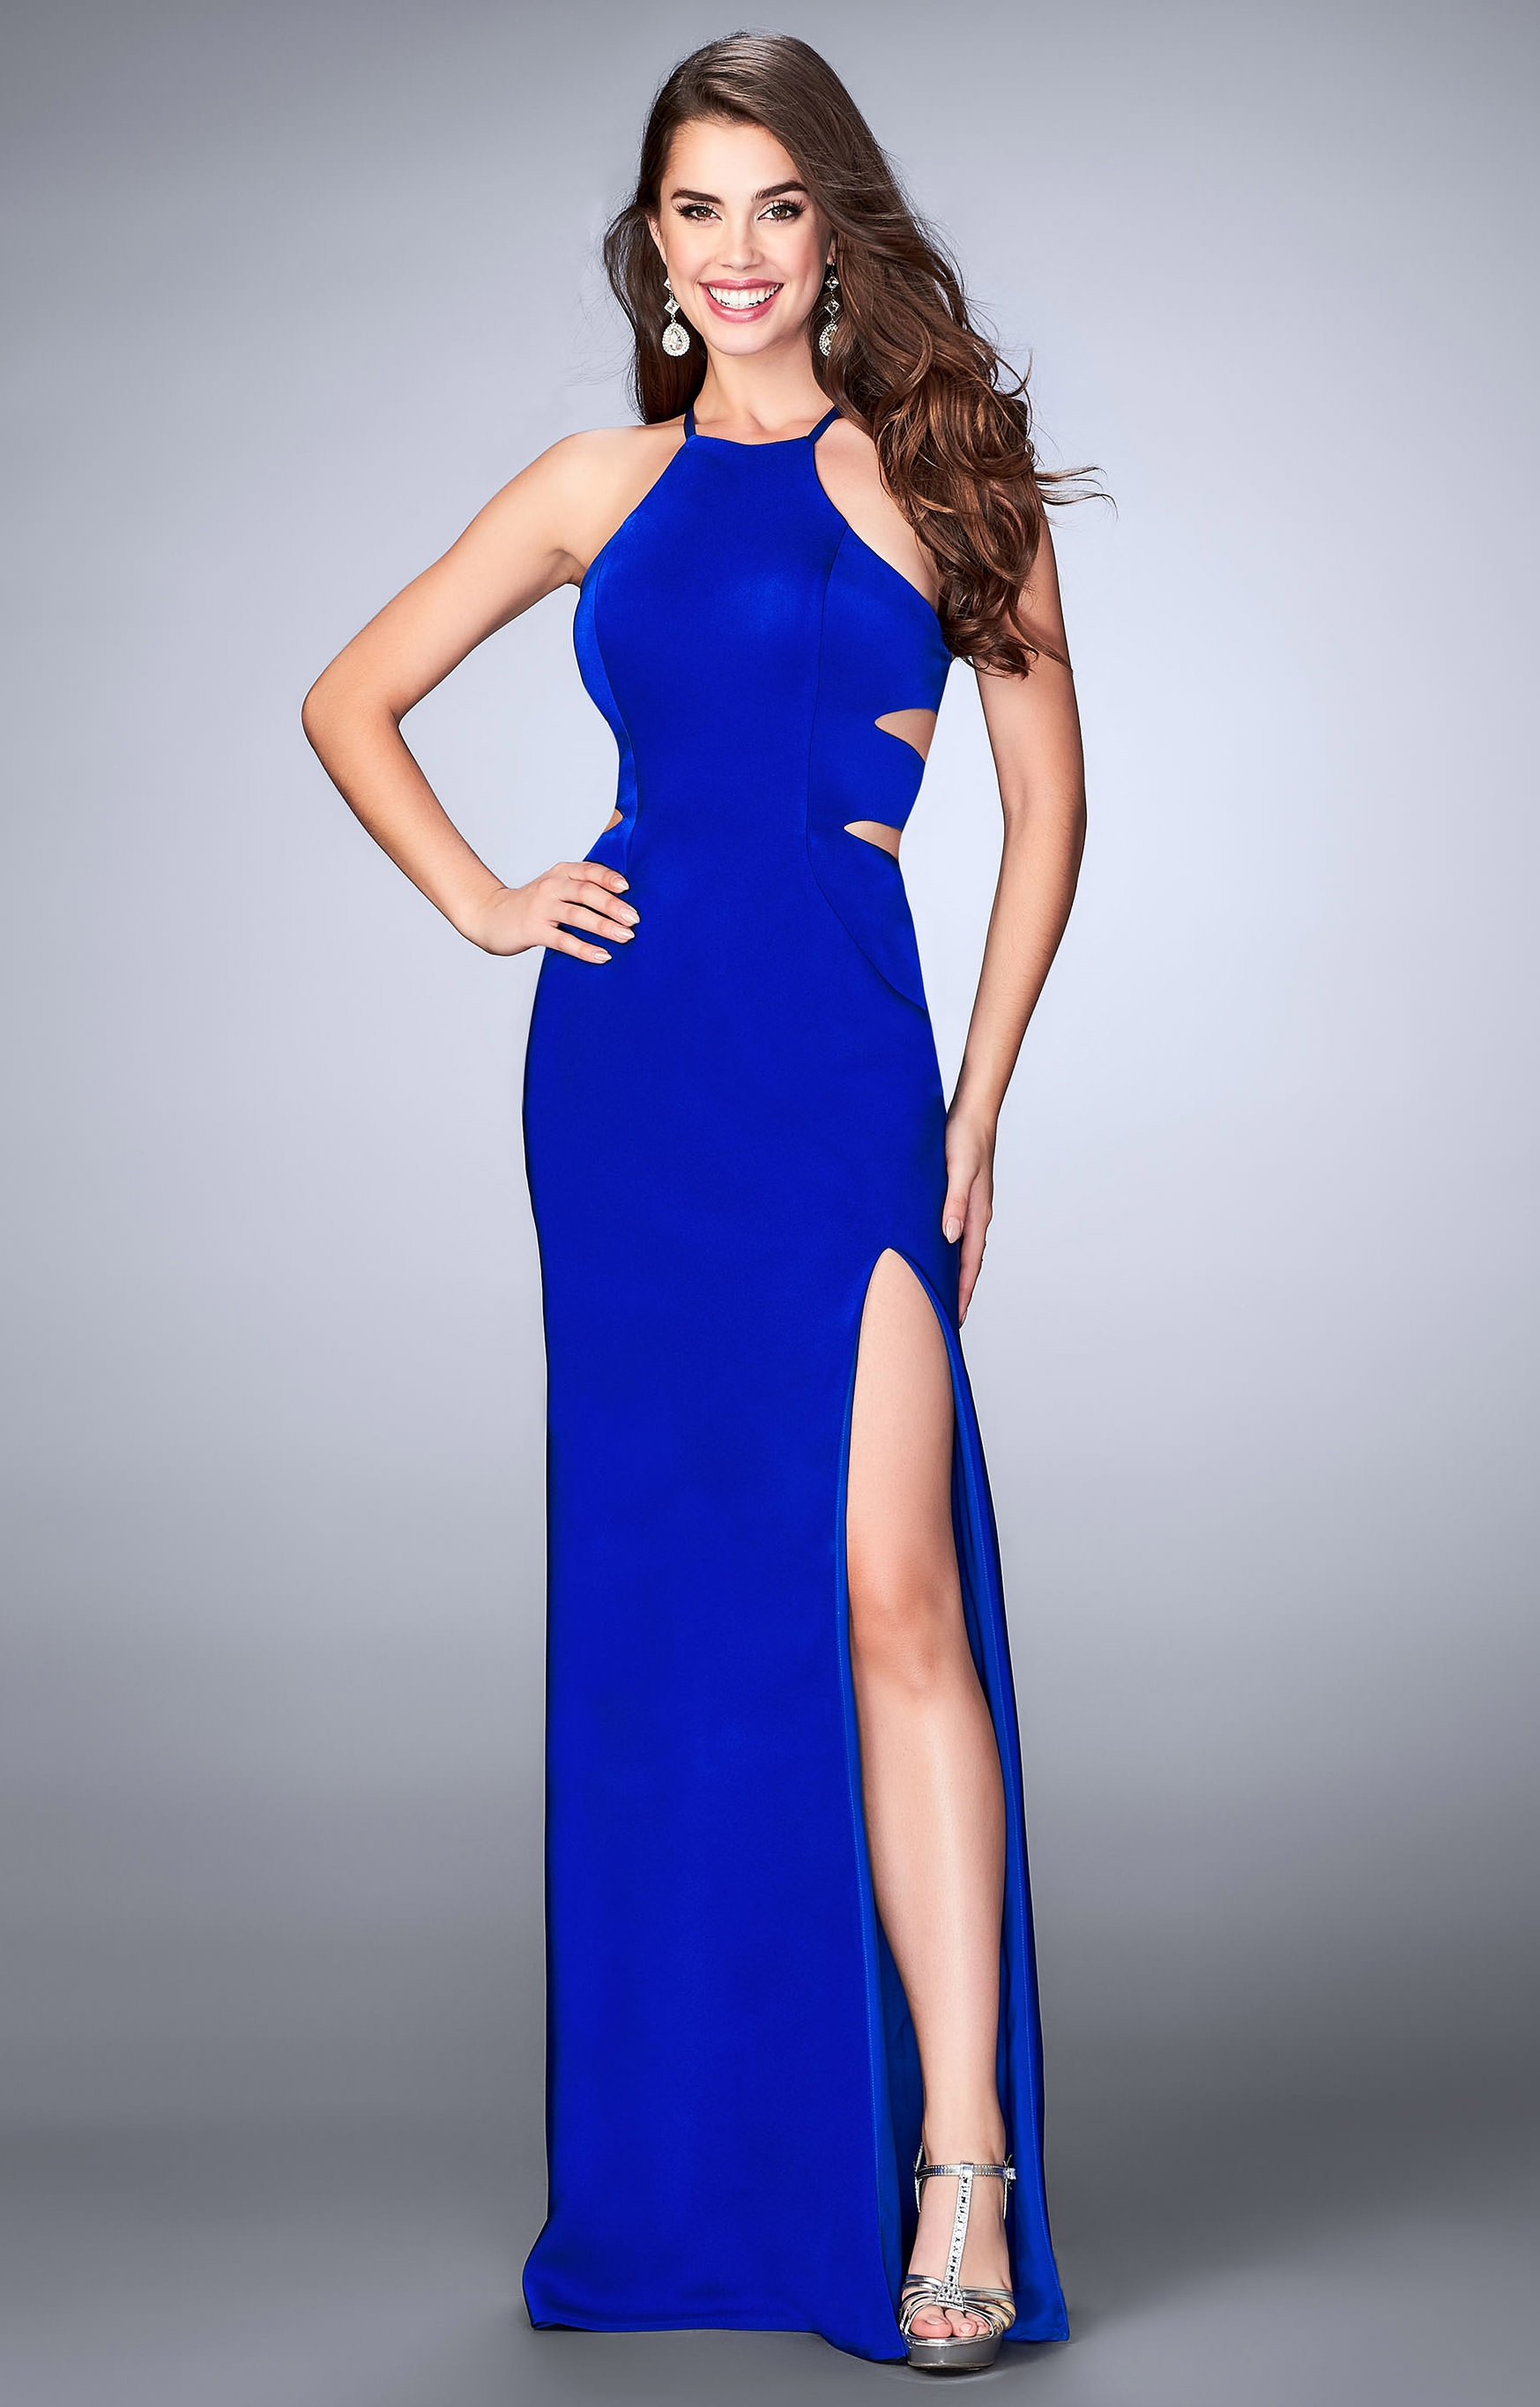 La Femme 24380 - Jersey Knit Dress with Open Back and High Slit Prom ...